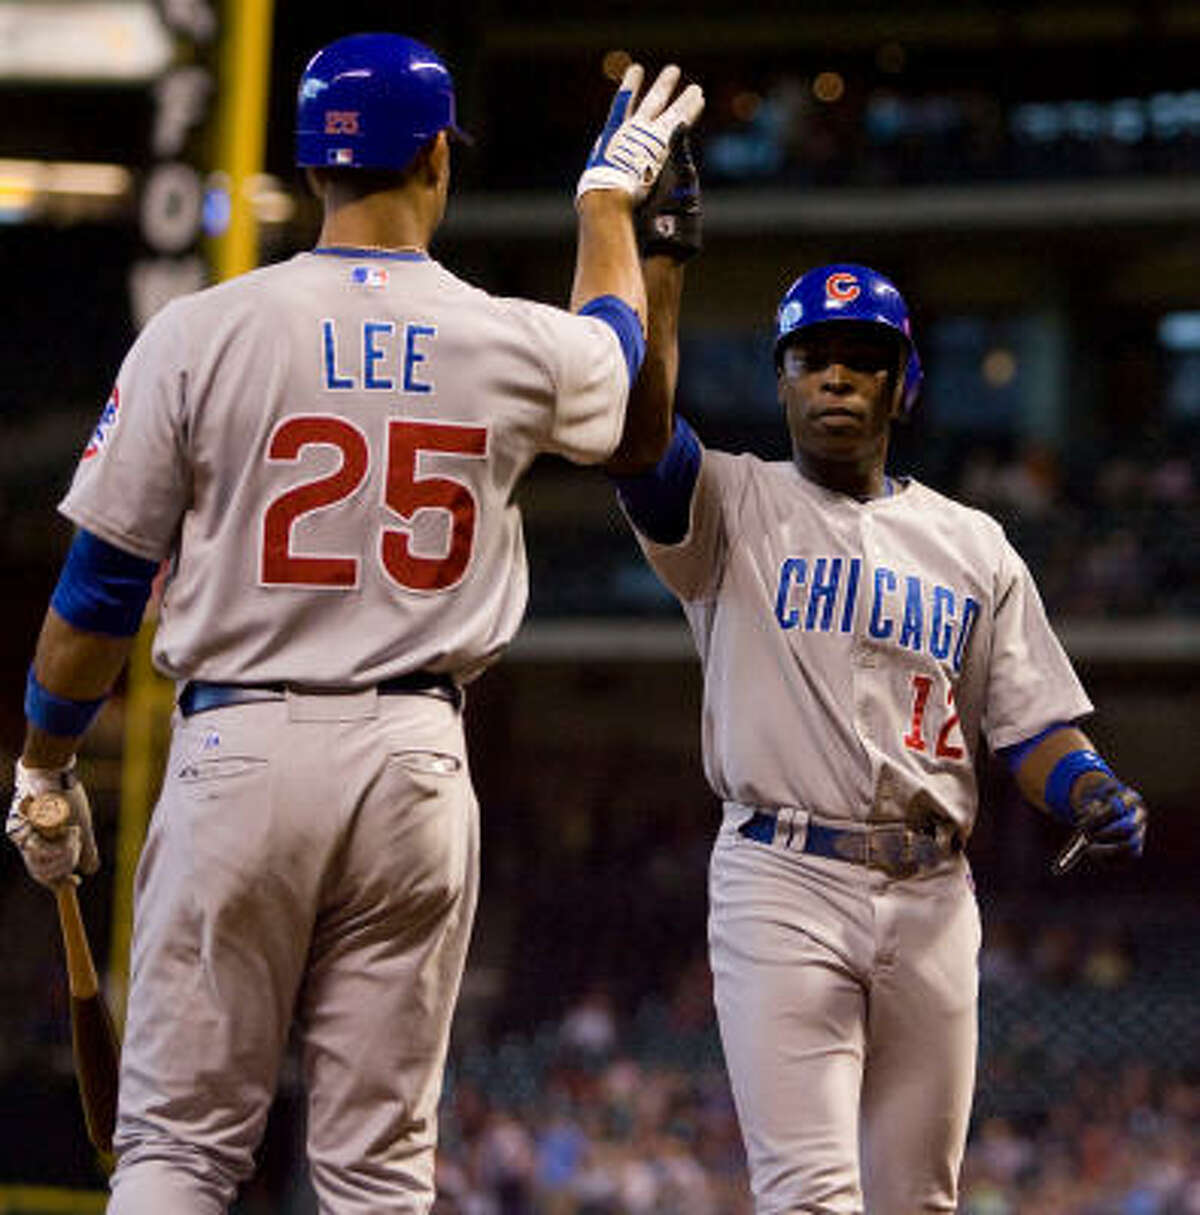 Chicago Cubs first basemen Derrek Lee celebrates a run scored by Cubs outfielder Alfonso Soriano in the first inning.